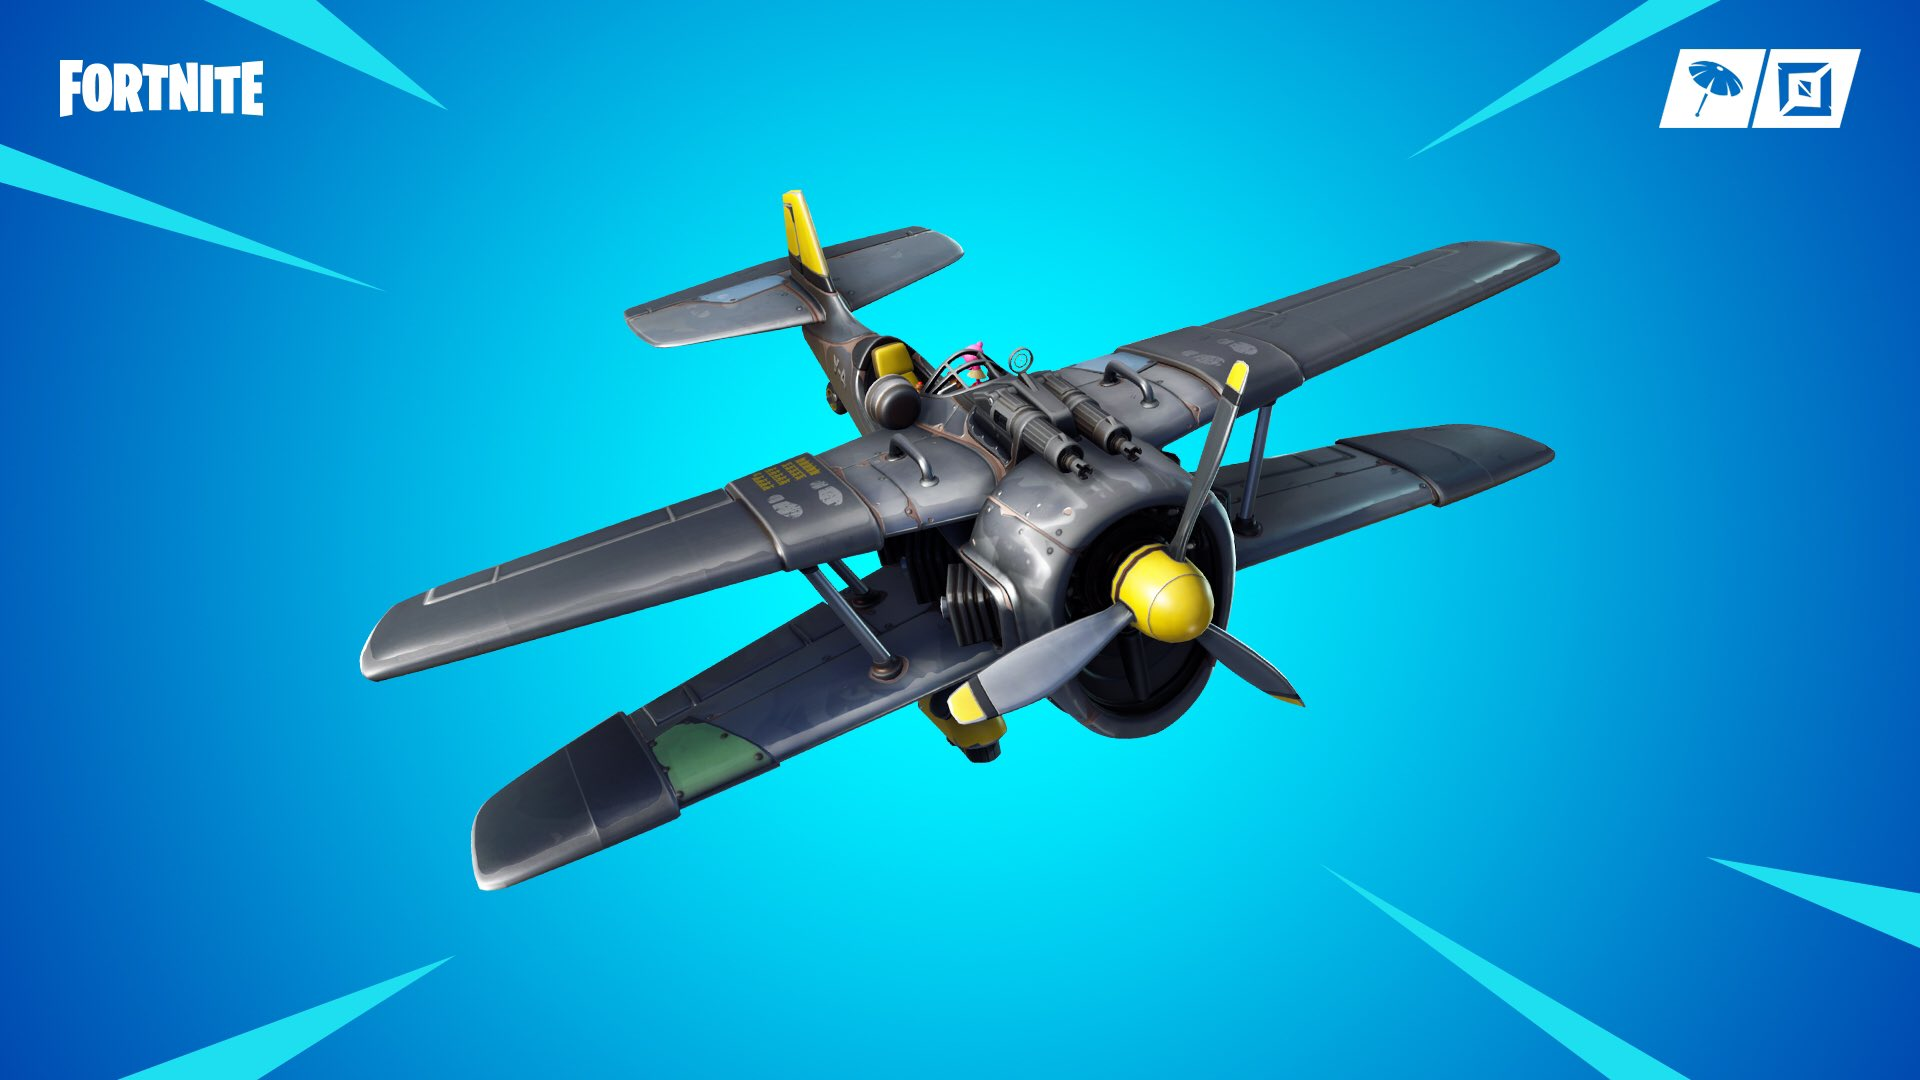 Fortnite X4 Stormwing